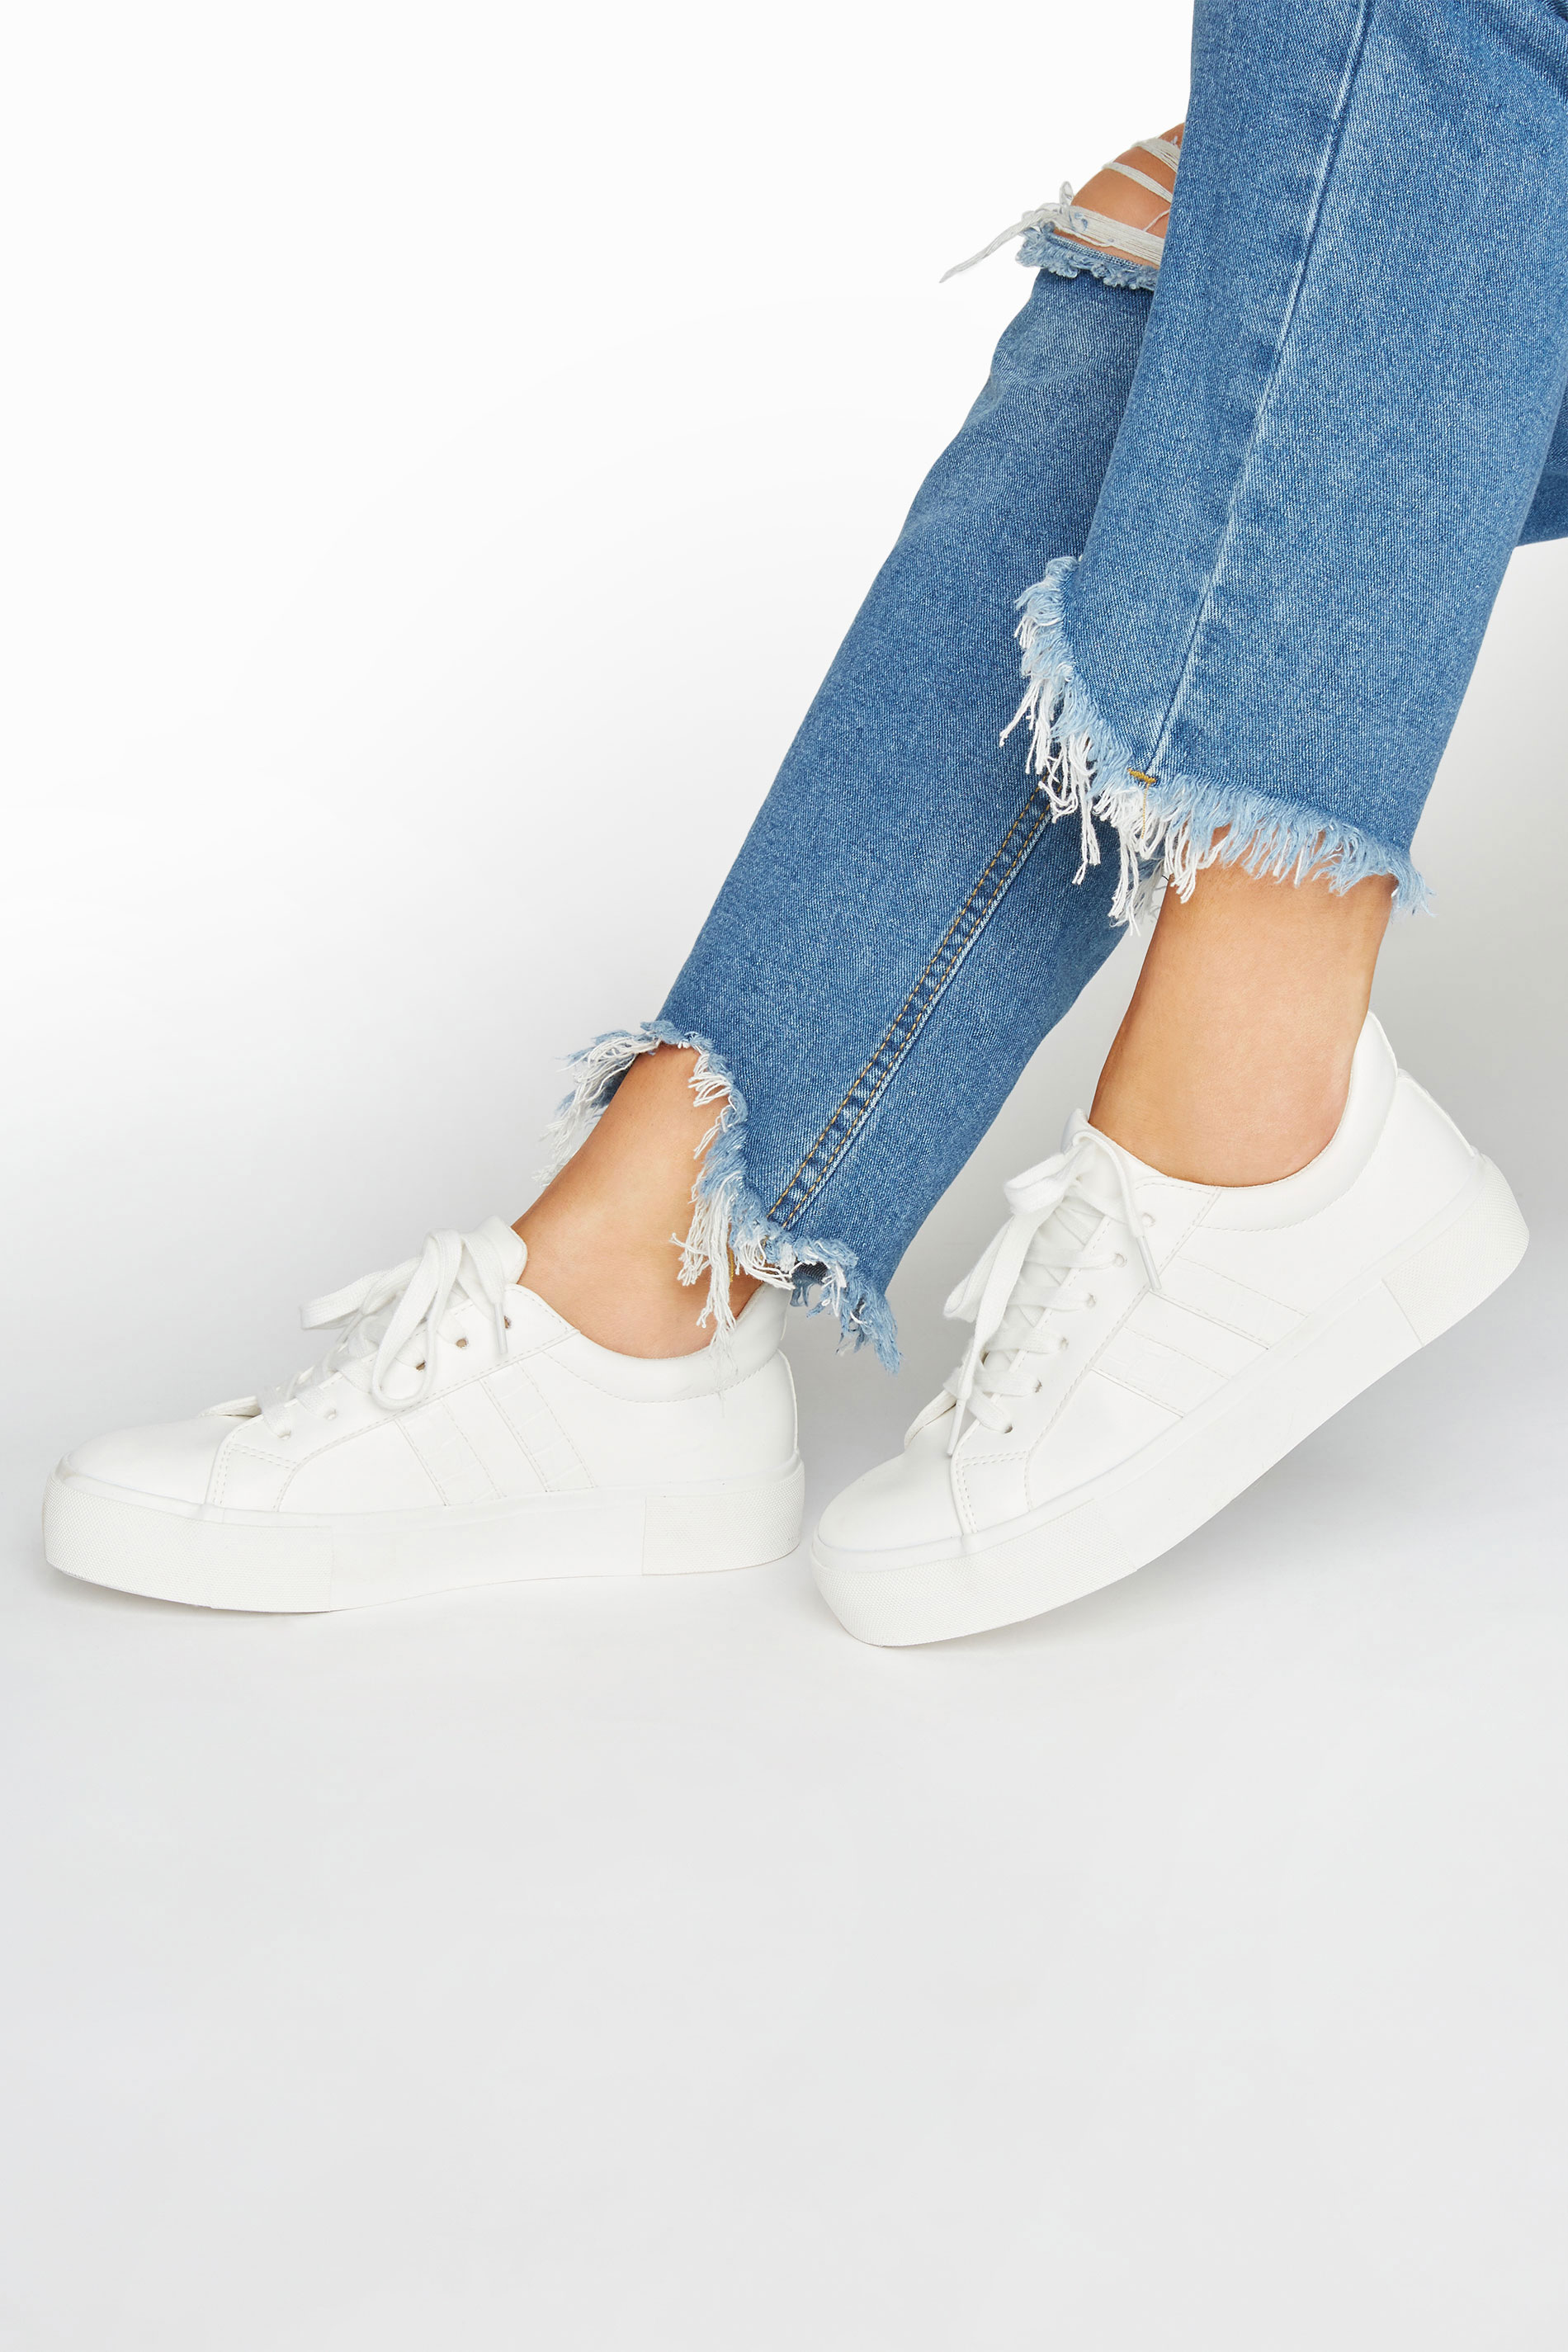 LIMITED COLLECTION White Platform Stripe Trainers In Extra Wide Fit